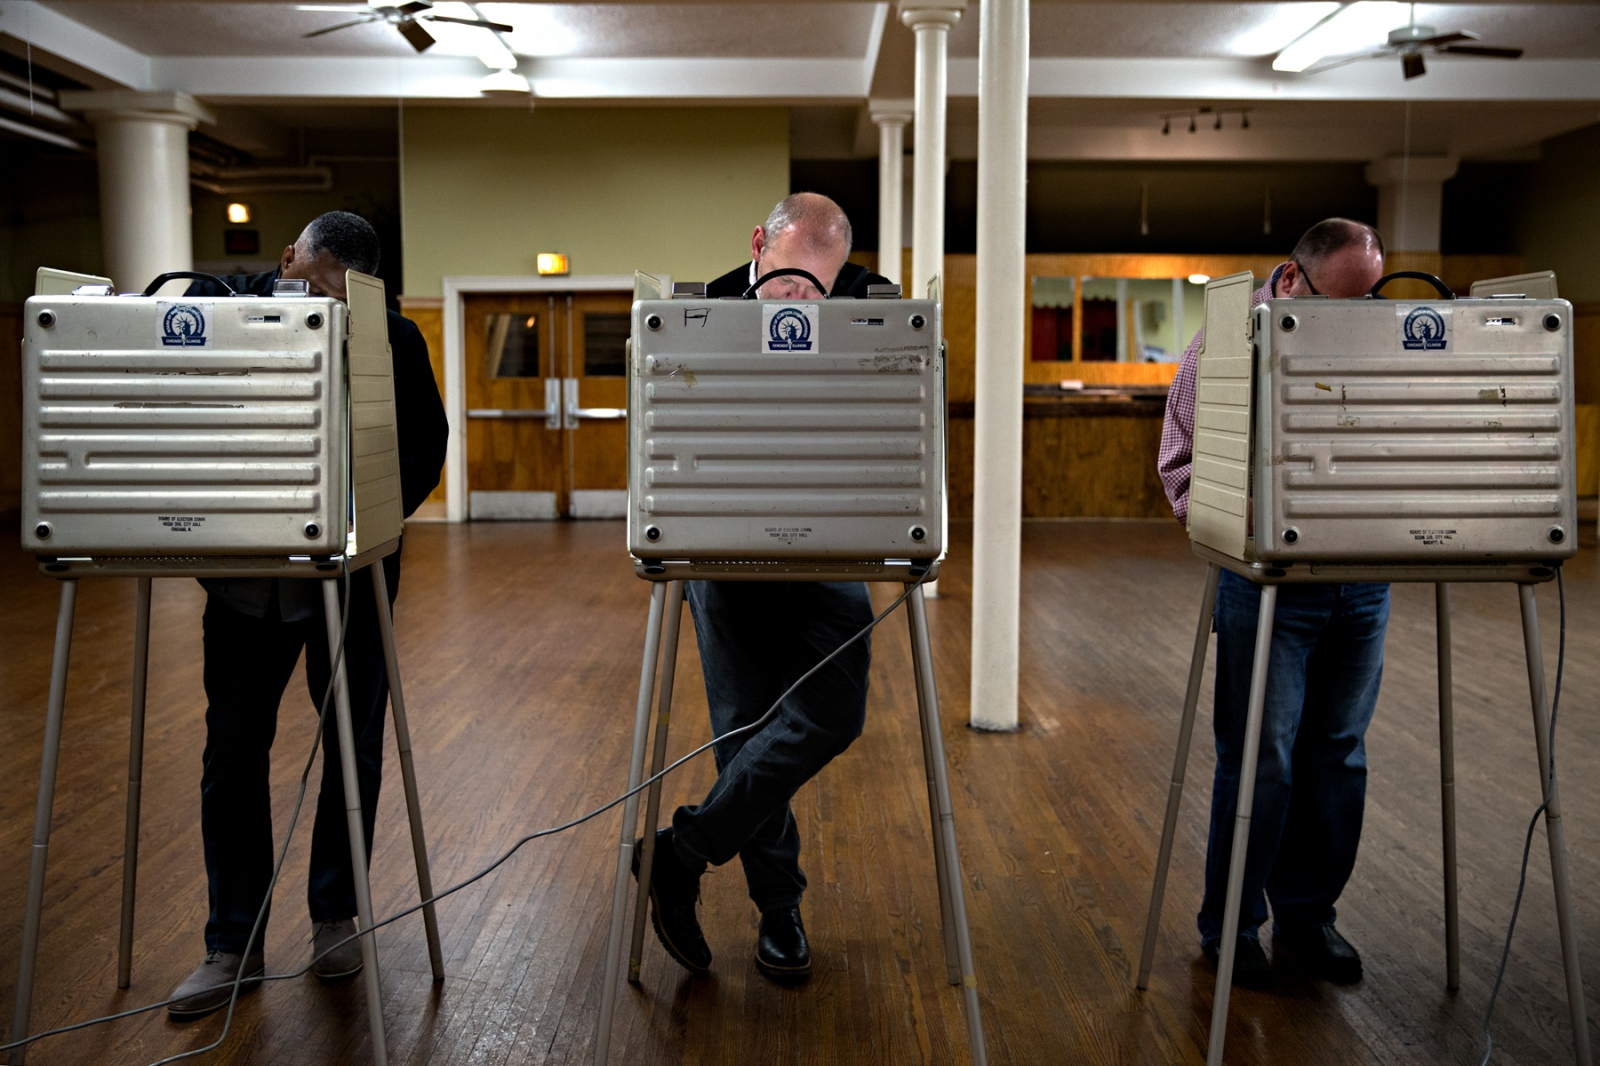 November 8, 2016 - Chicago, Illinois - November 8, 2016, eligible Americans stood behind voting booths to vote for their presidential candidate of choice. In one of the biggest upset in any presidential race, the widely seen as the favorite Hillary Clinton lost her presidential bid to Donald Trump who became the 45th President of the United States.